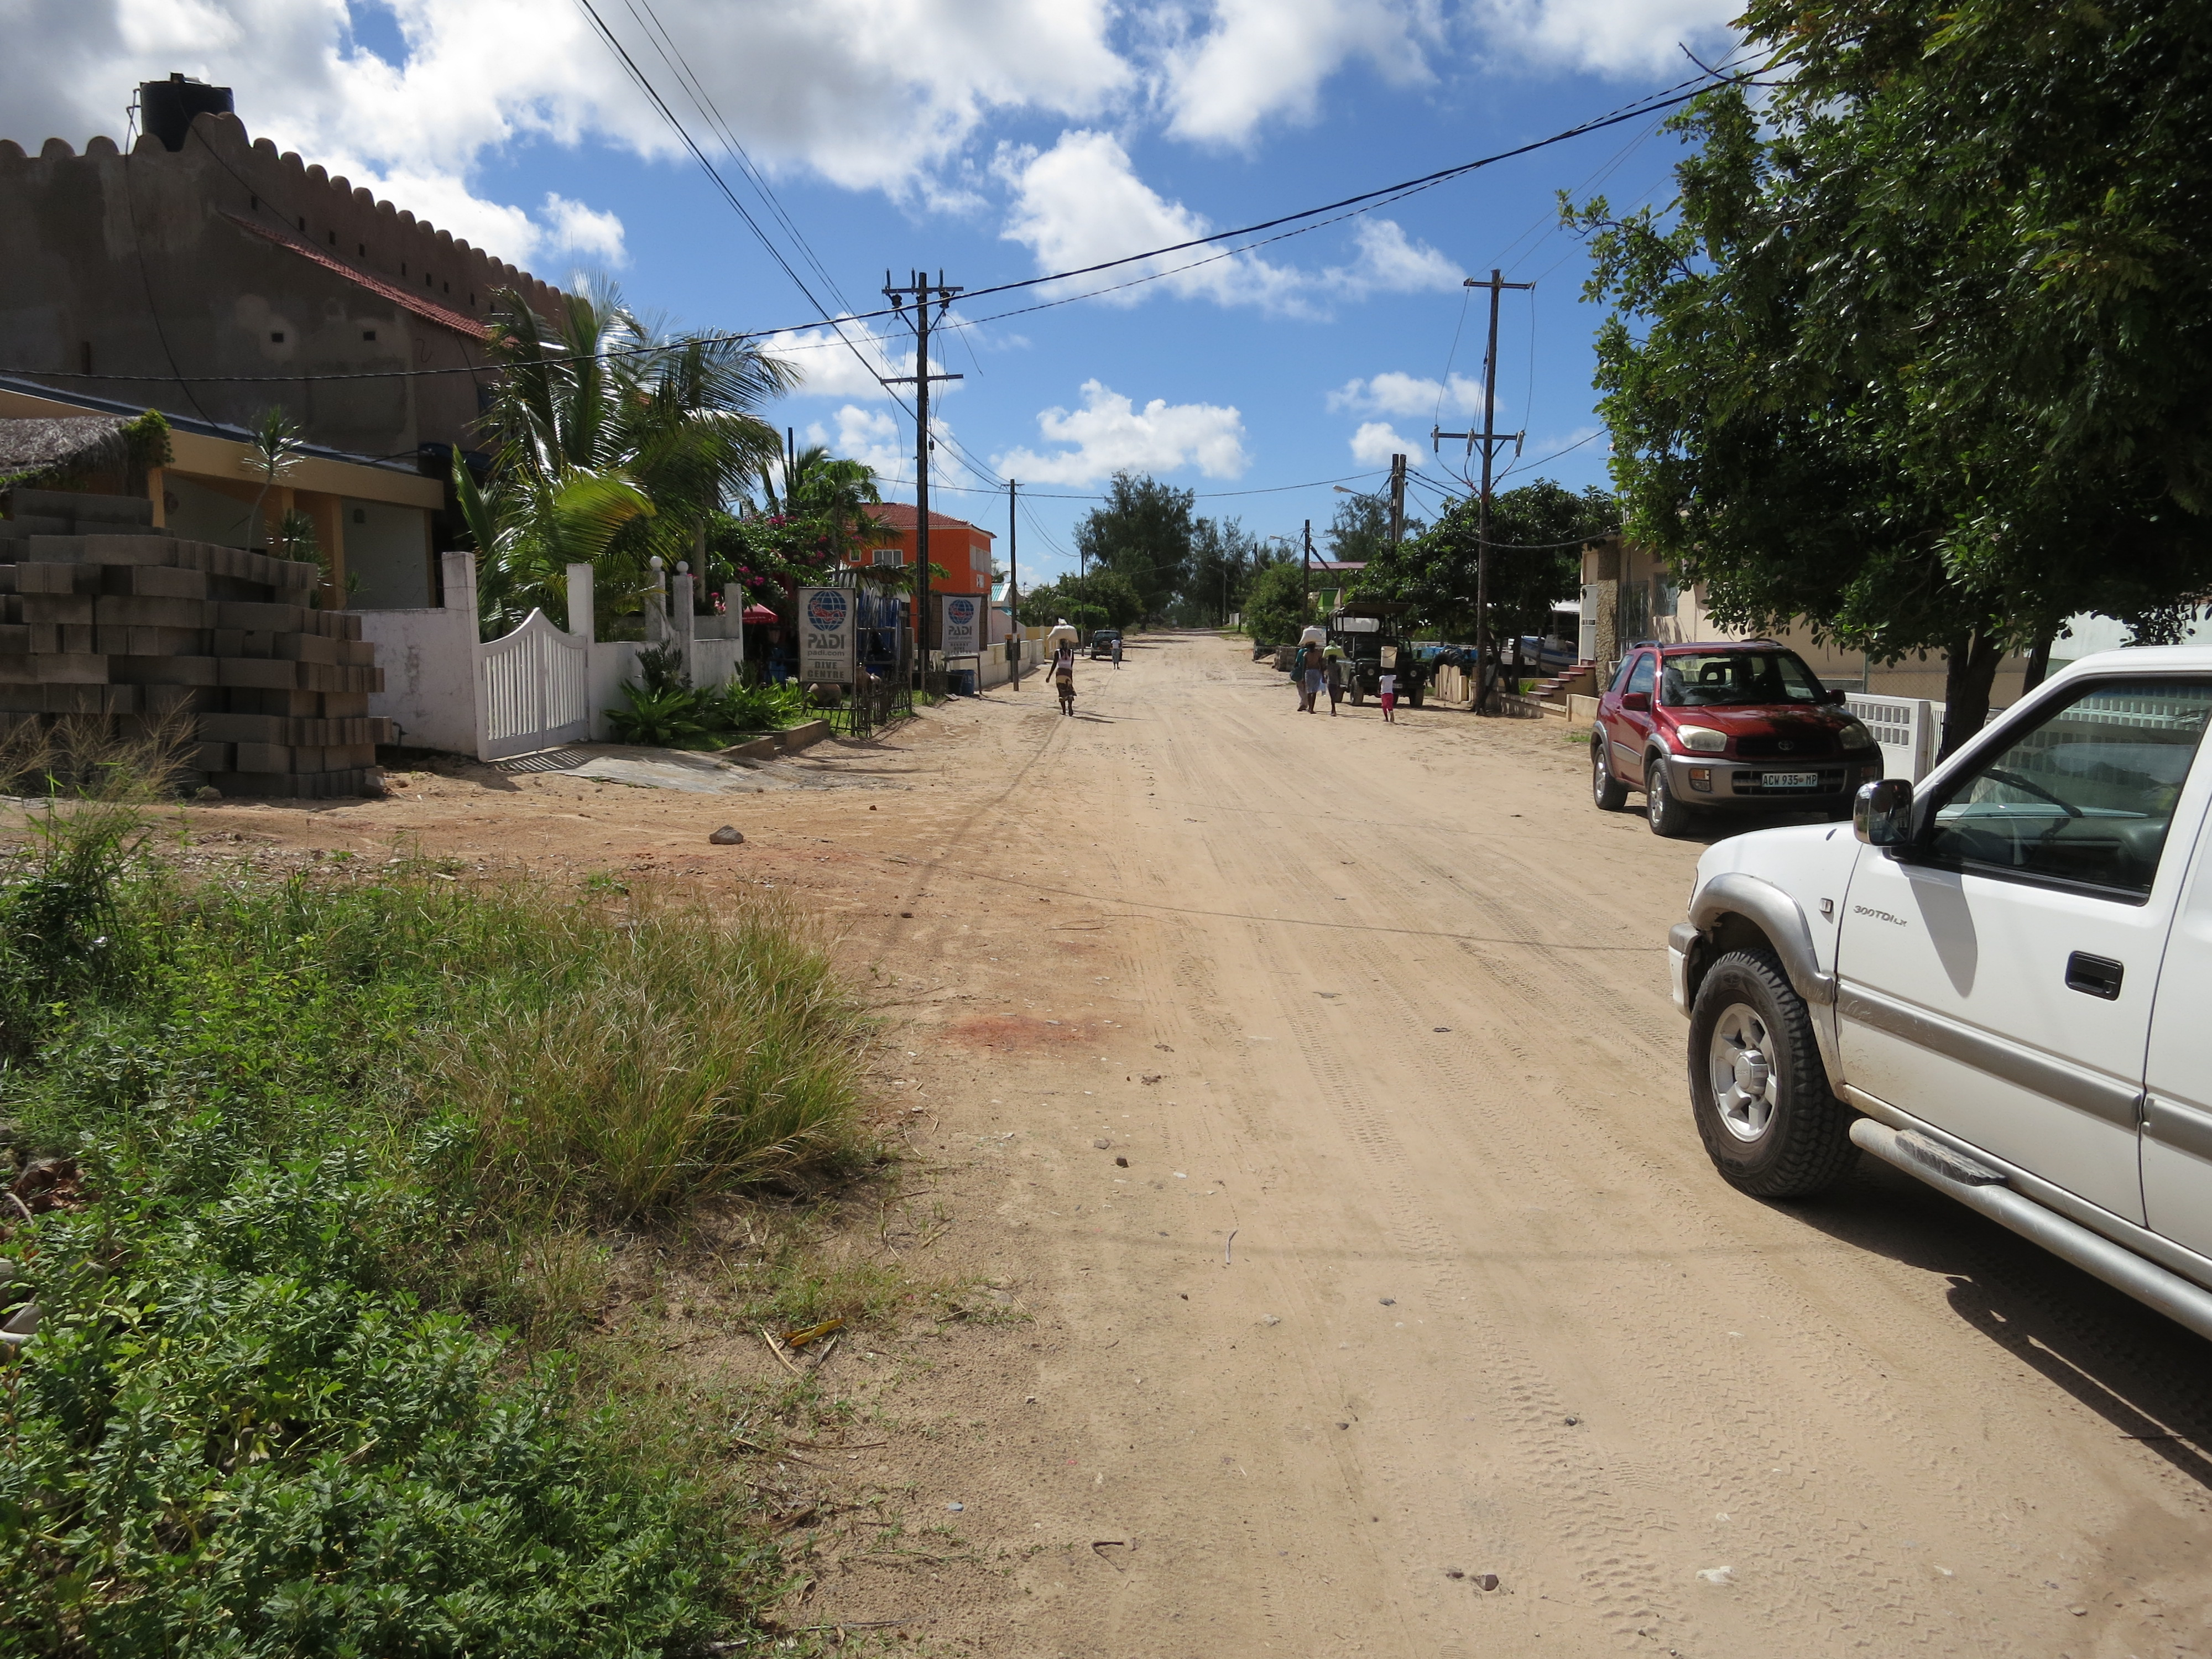 The road into Tofo, and towards the dive centre. See the PADI signs in the distance.